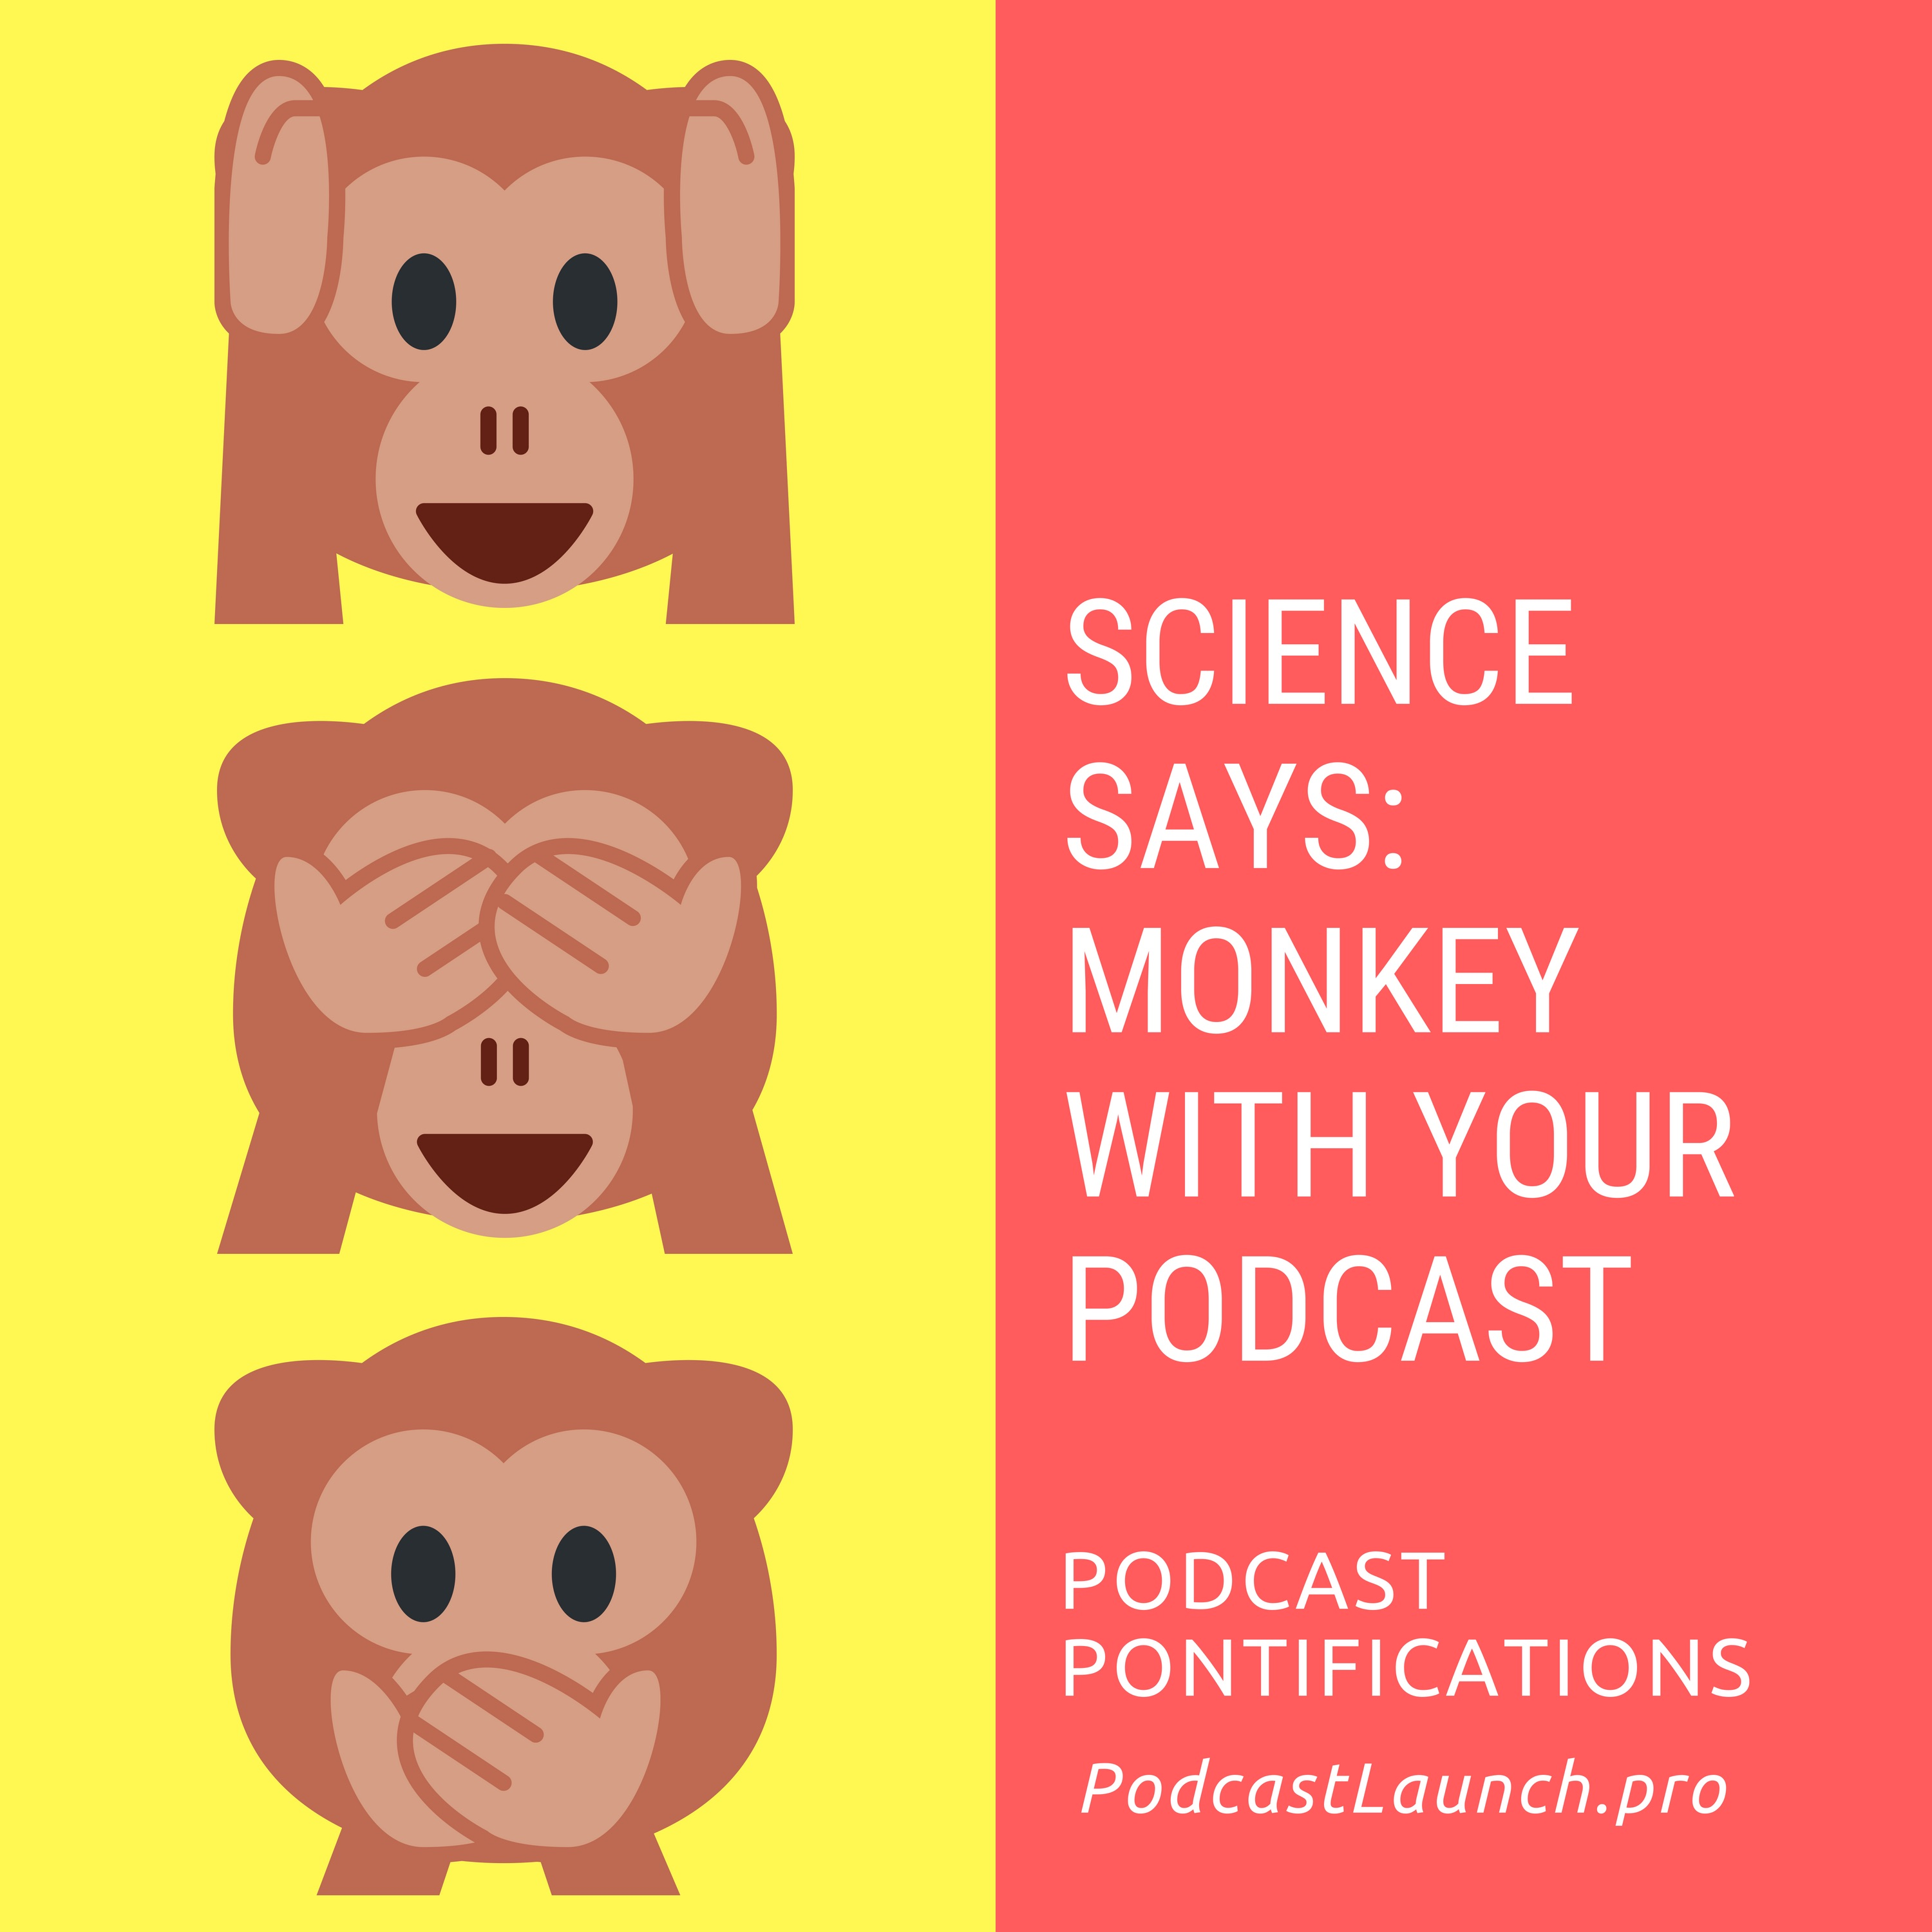 Science Says Monkey With Your Podcast